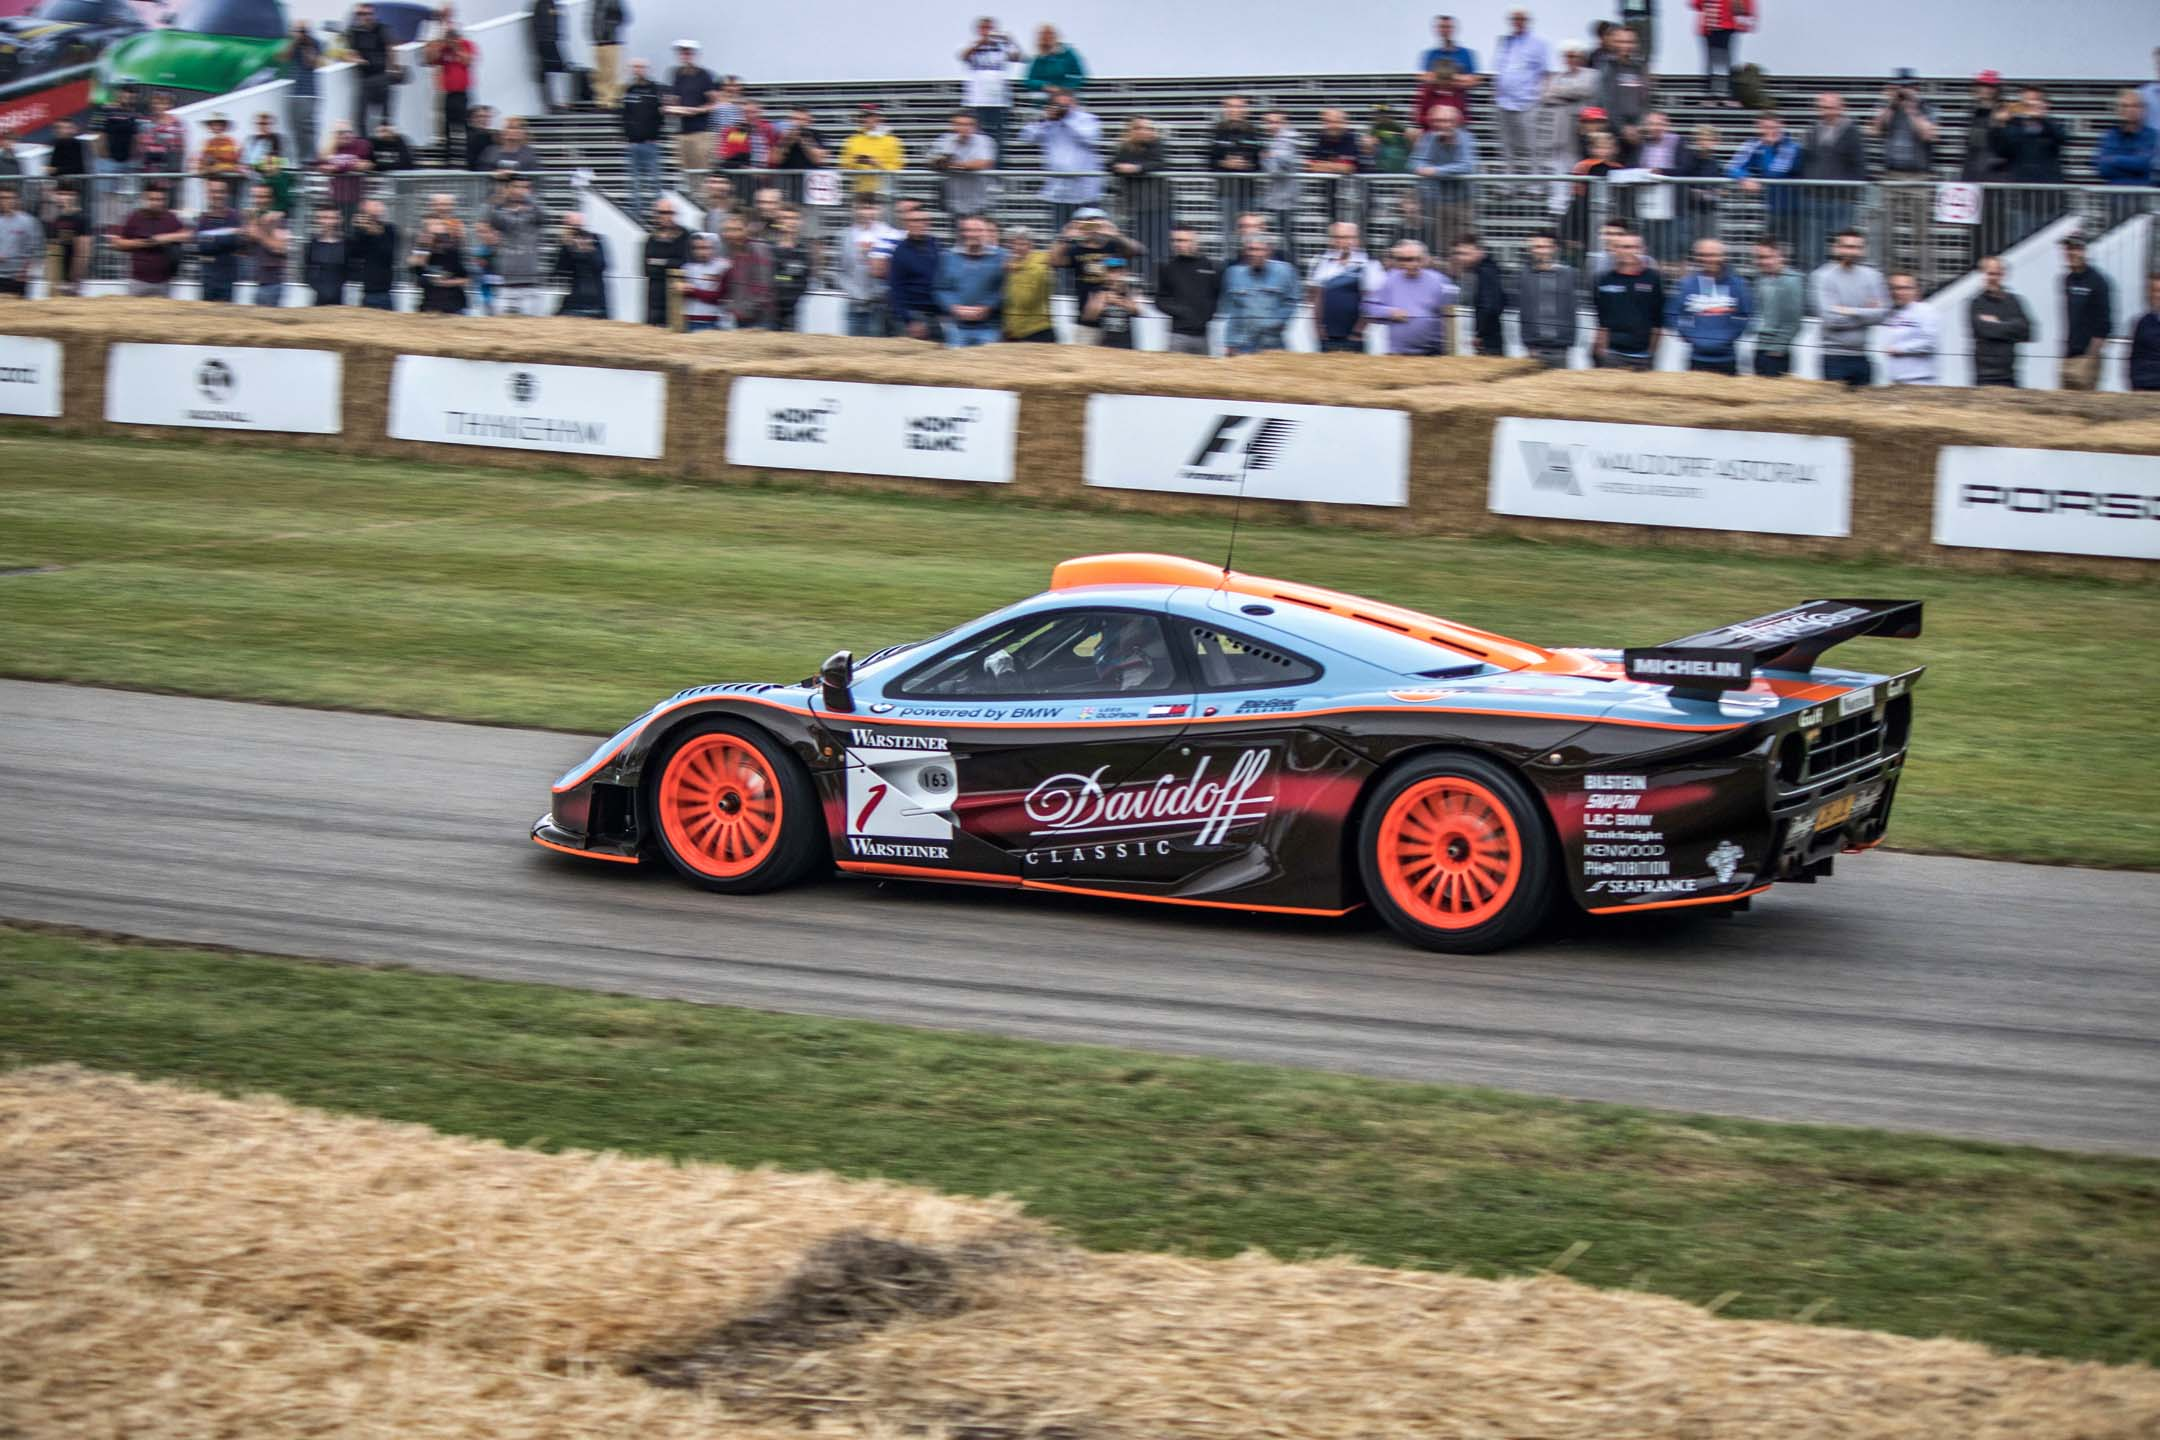 Here's one: the McLaren F1 GTR longtail. The McLaren F1, also turning 25 this year, is perhaps the purest road-going supercar ever built. This is the racing evolution of the breed, as competed at Le Mans in 1997.